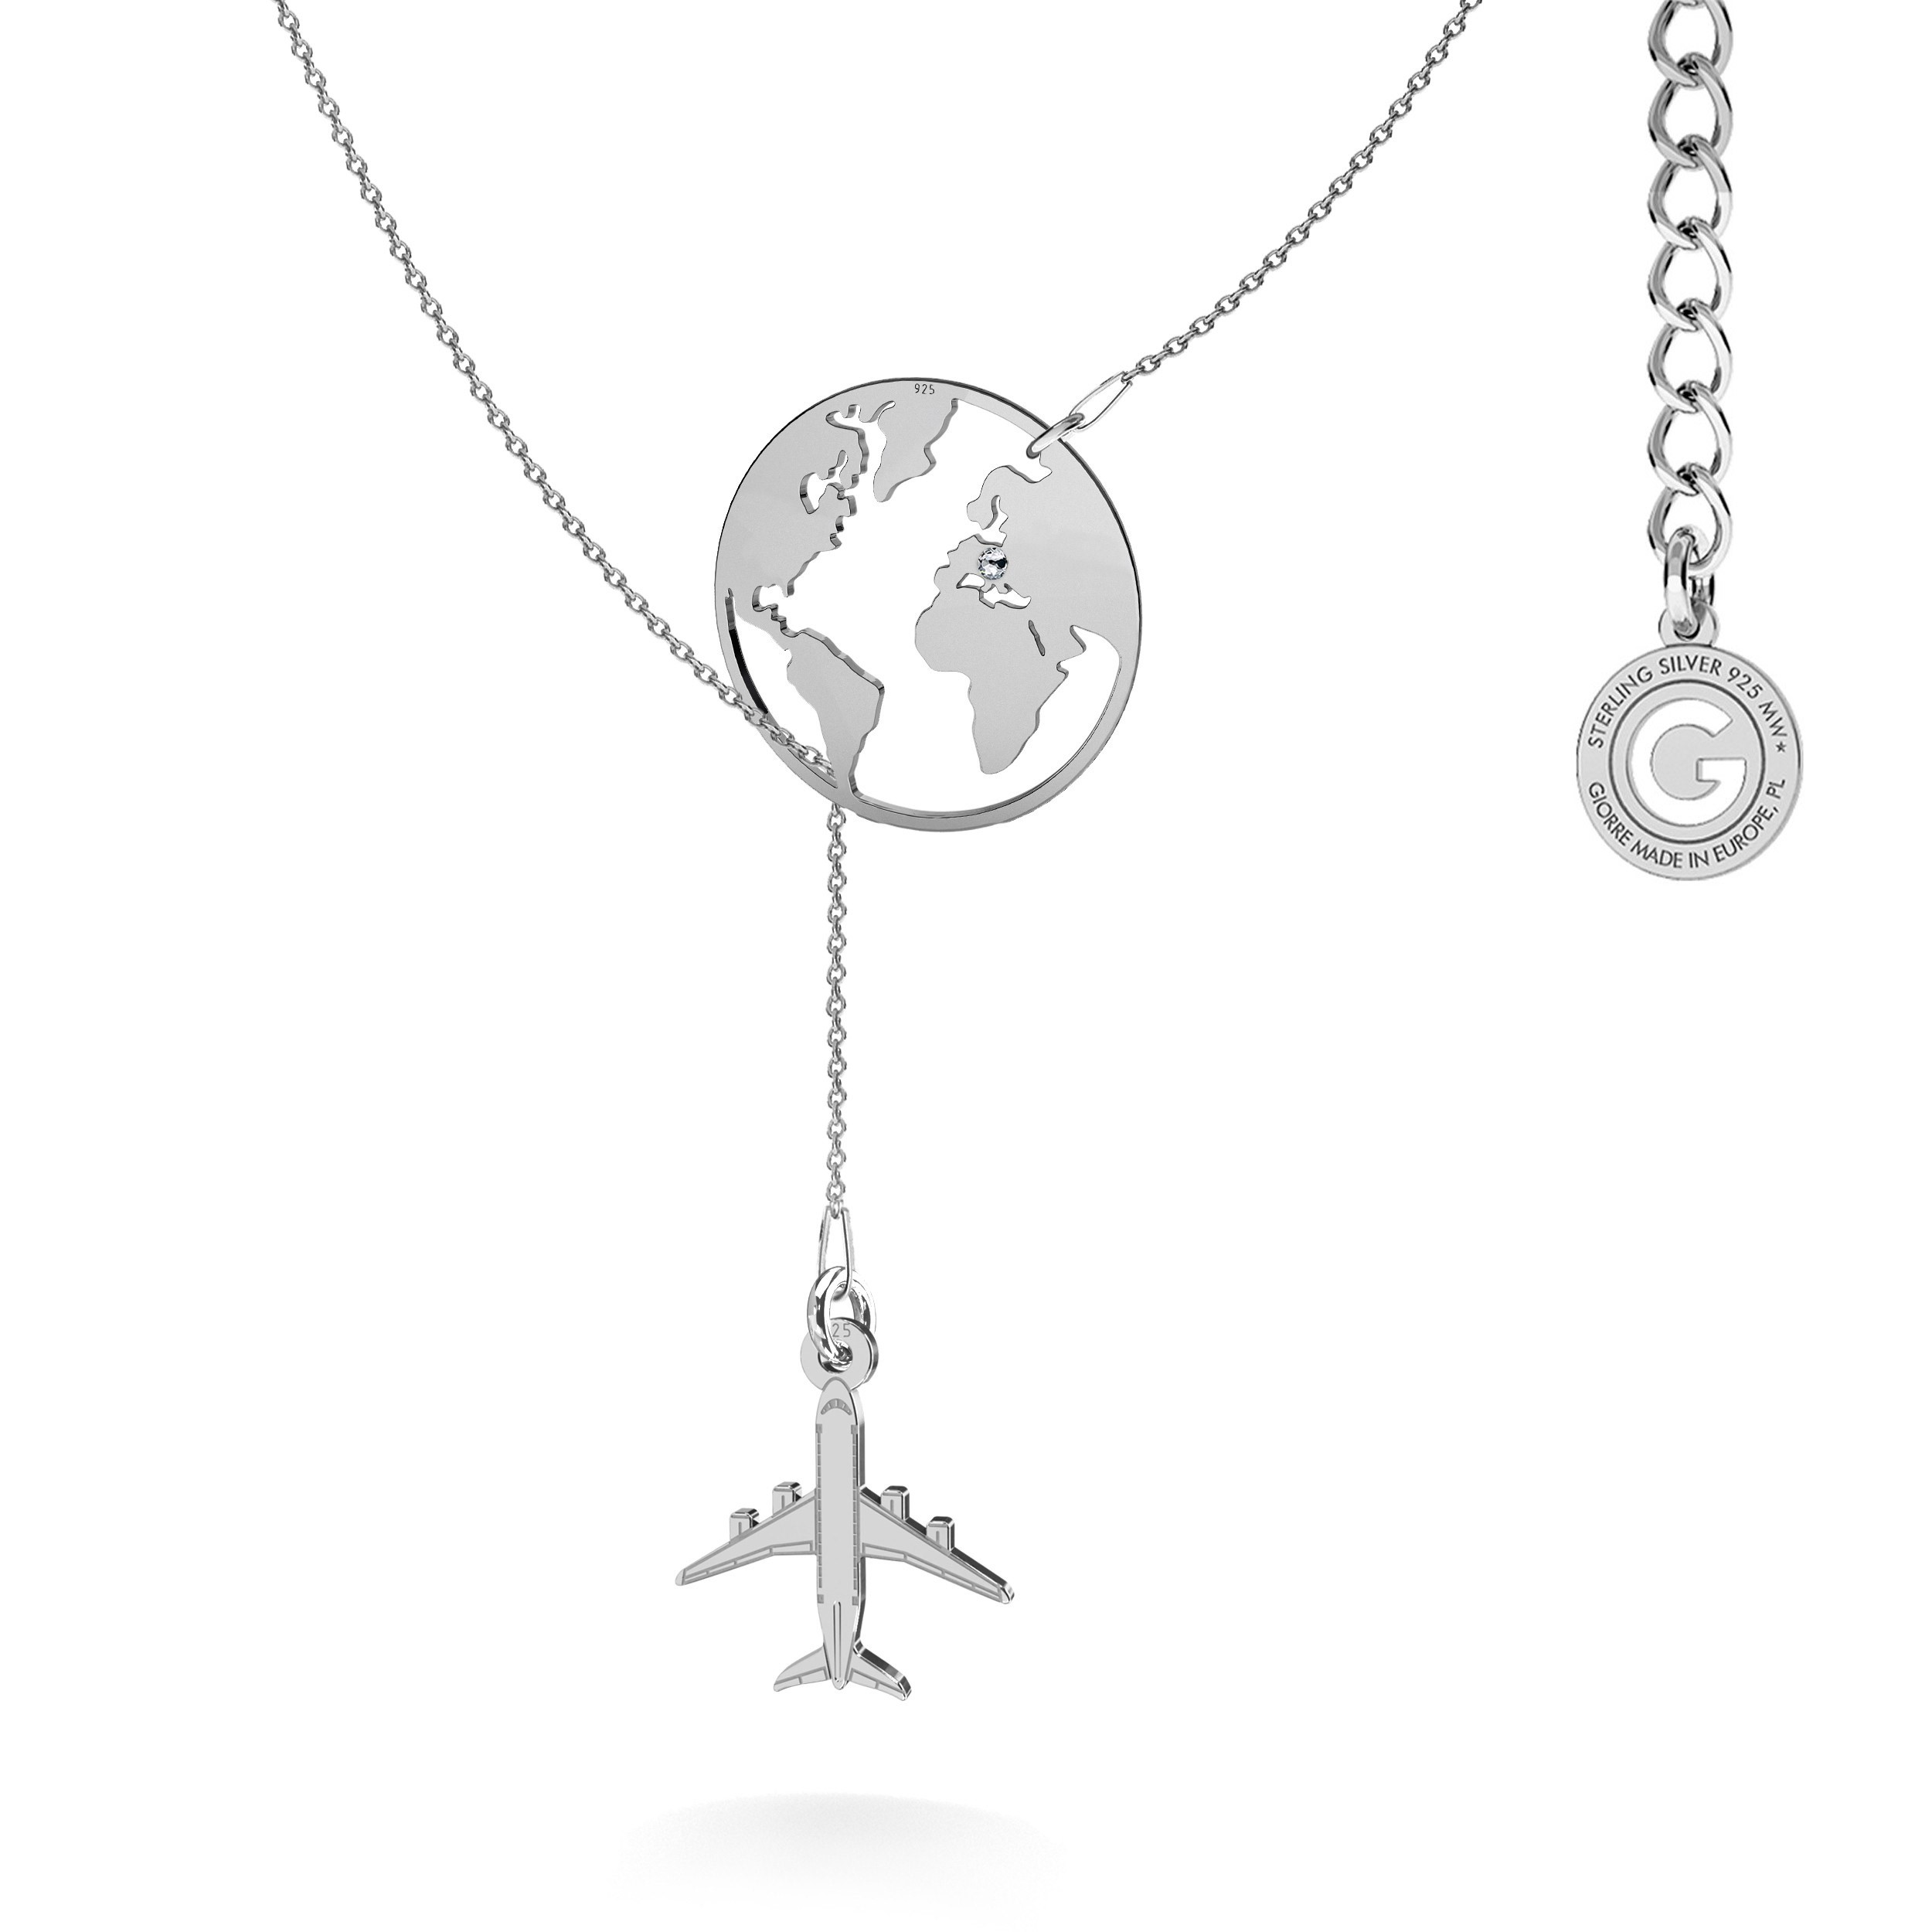 MON DÉFI Necklace - Globe with plane, sterling silver 925